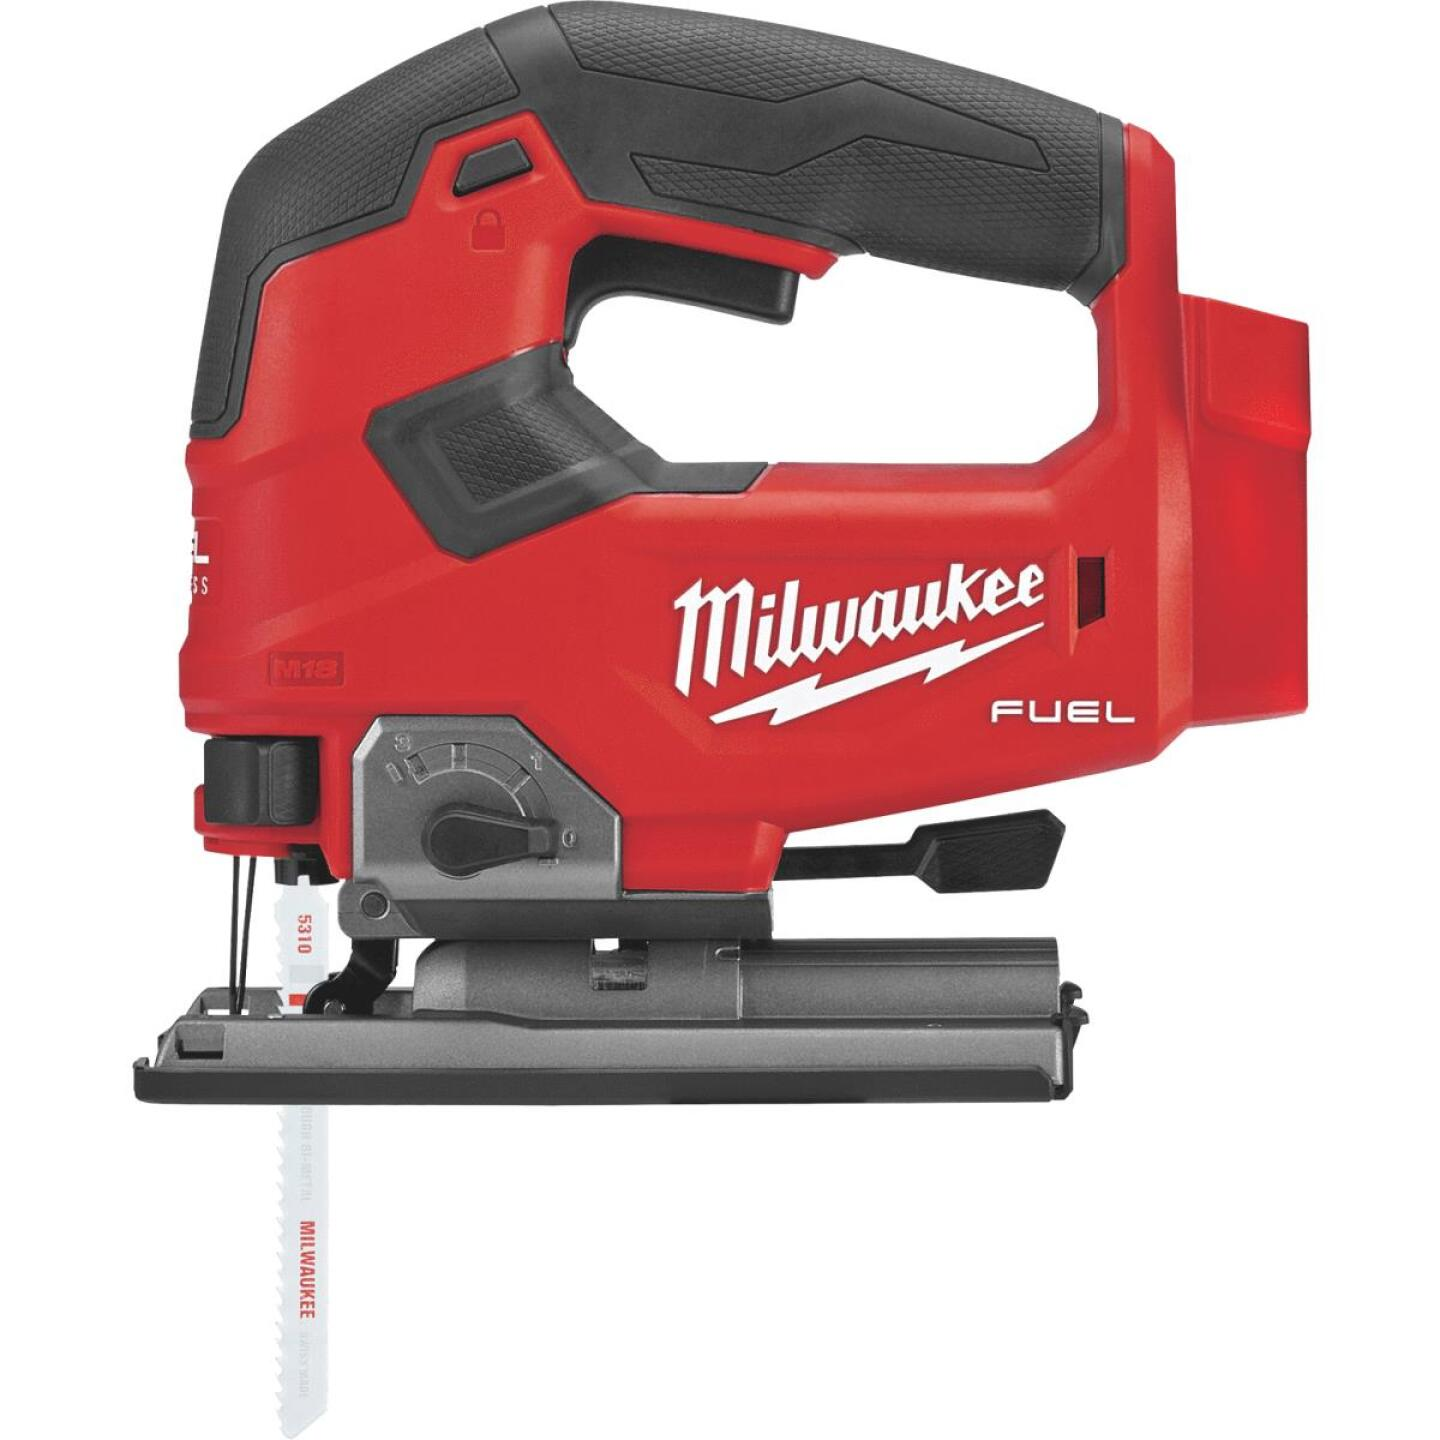 Milwaukee M18 FUEL 18 Volt Lithium-Ion Brushless Cordless Jig Saw (Bare Tool) Image 1